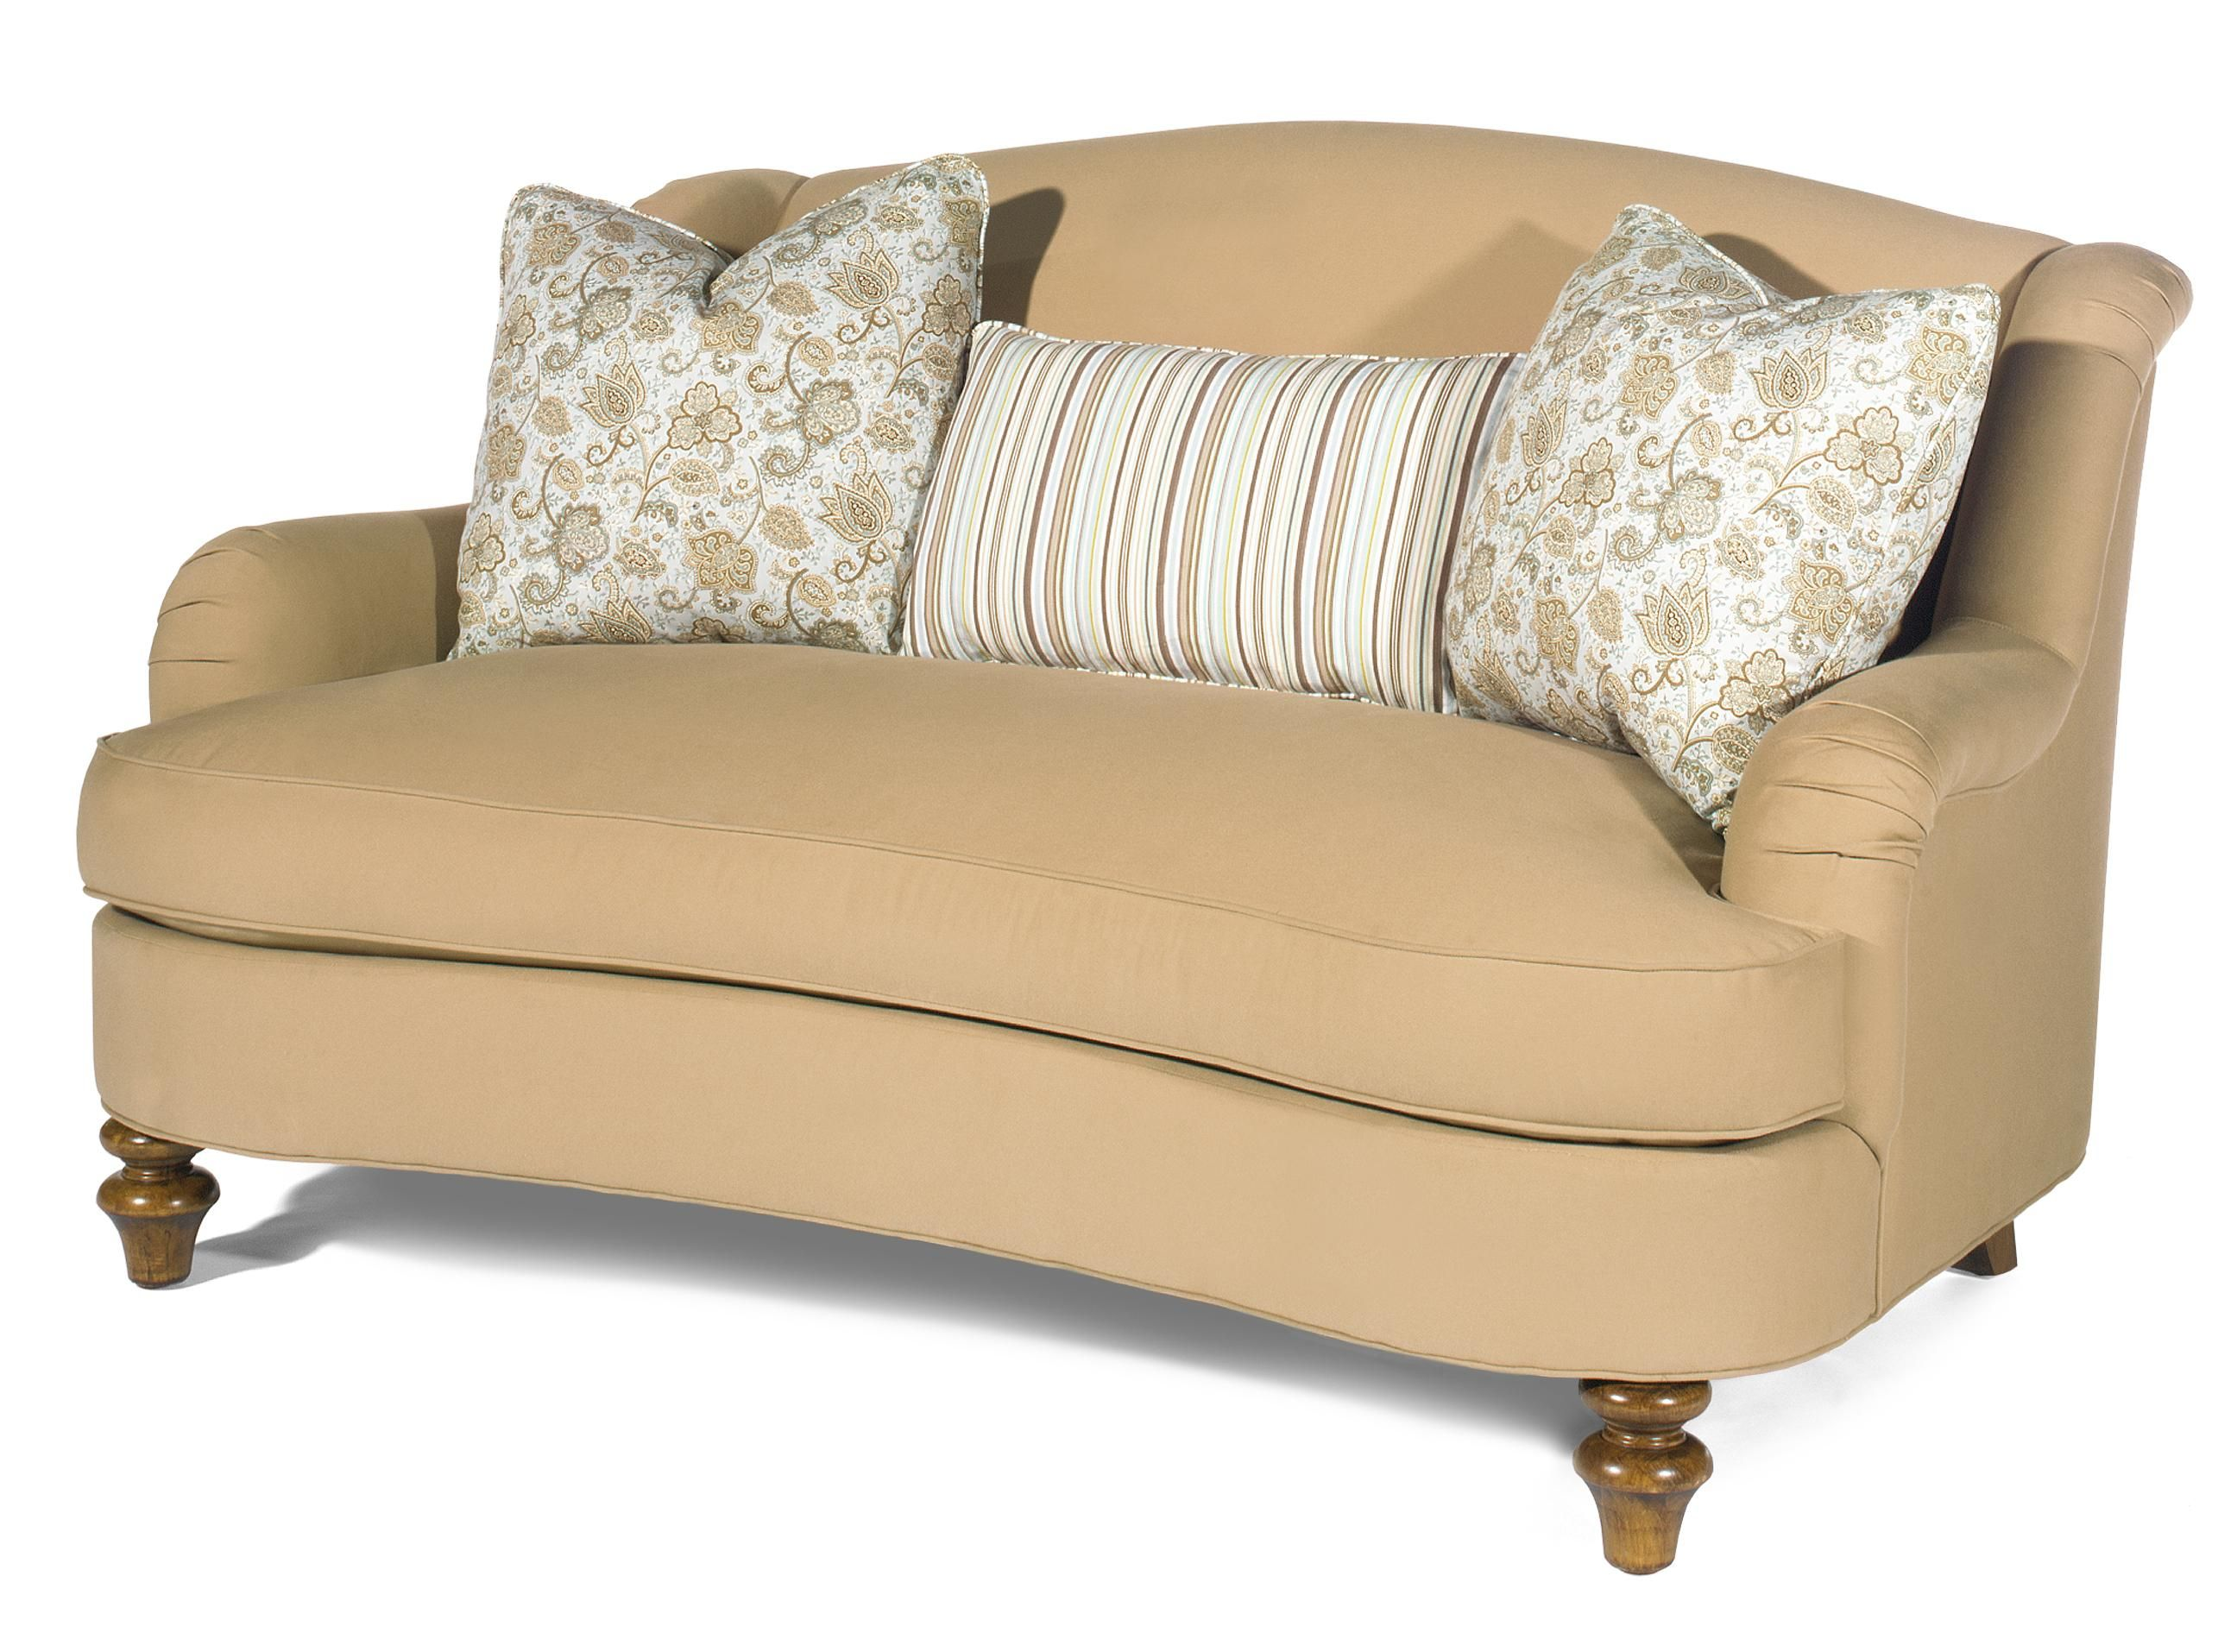 Upholstery New Sofa On Pinterest French General